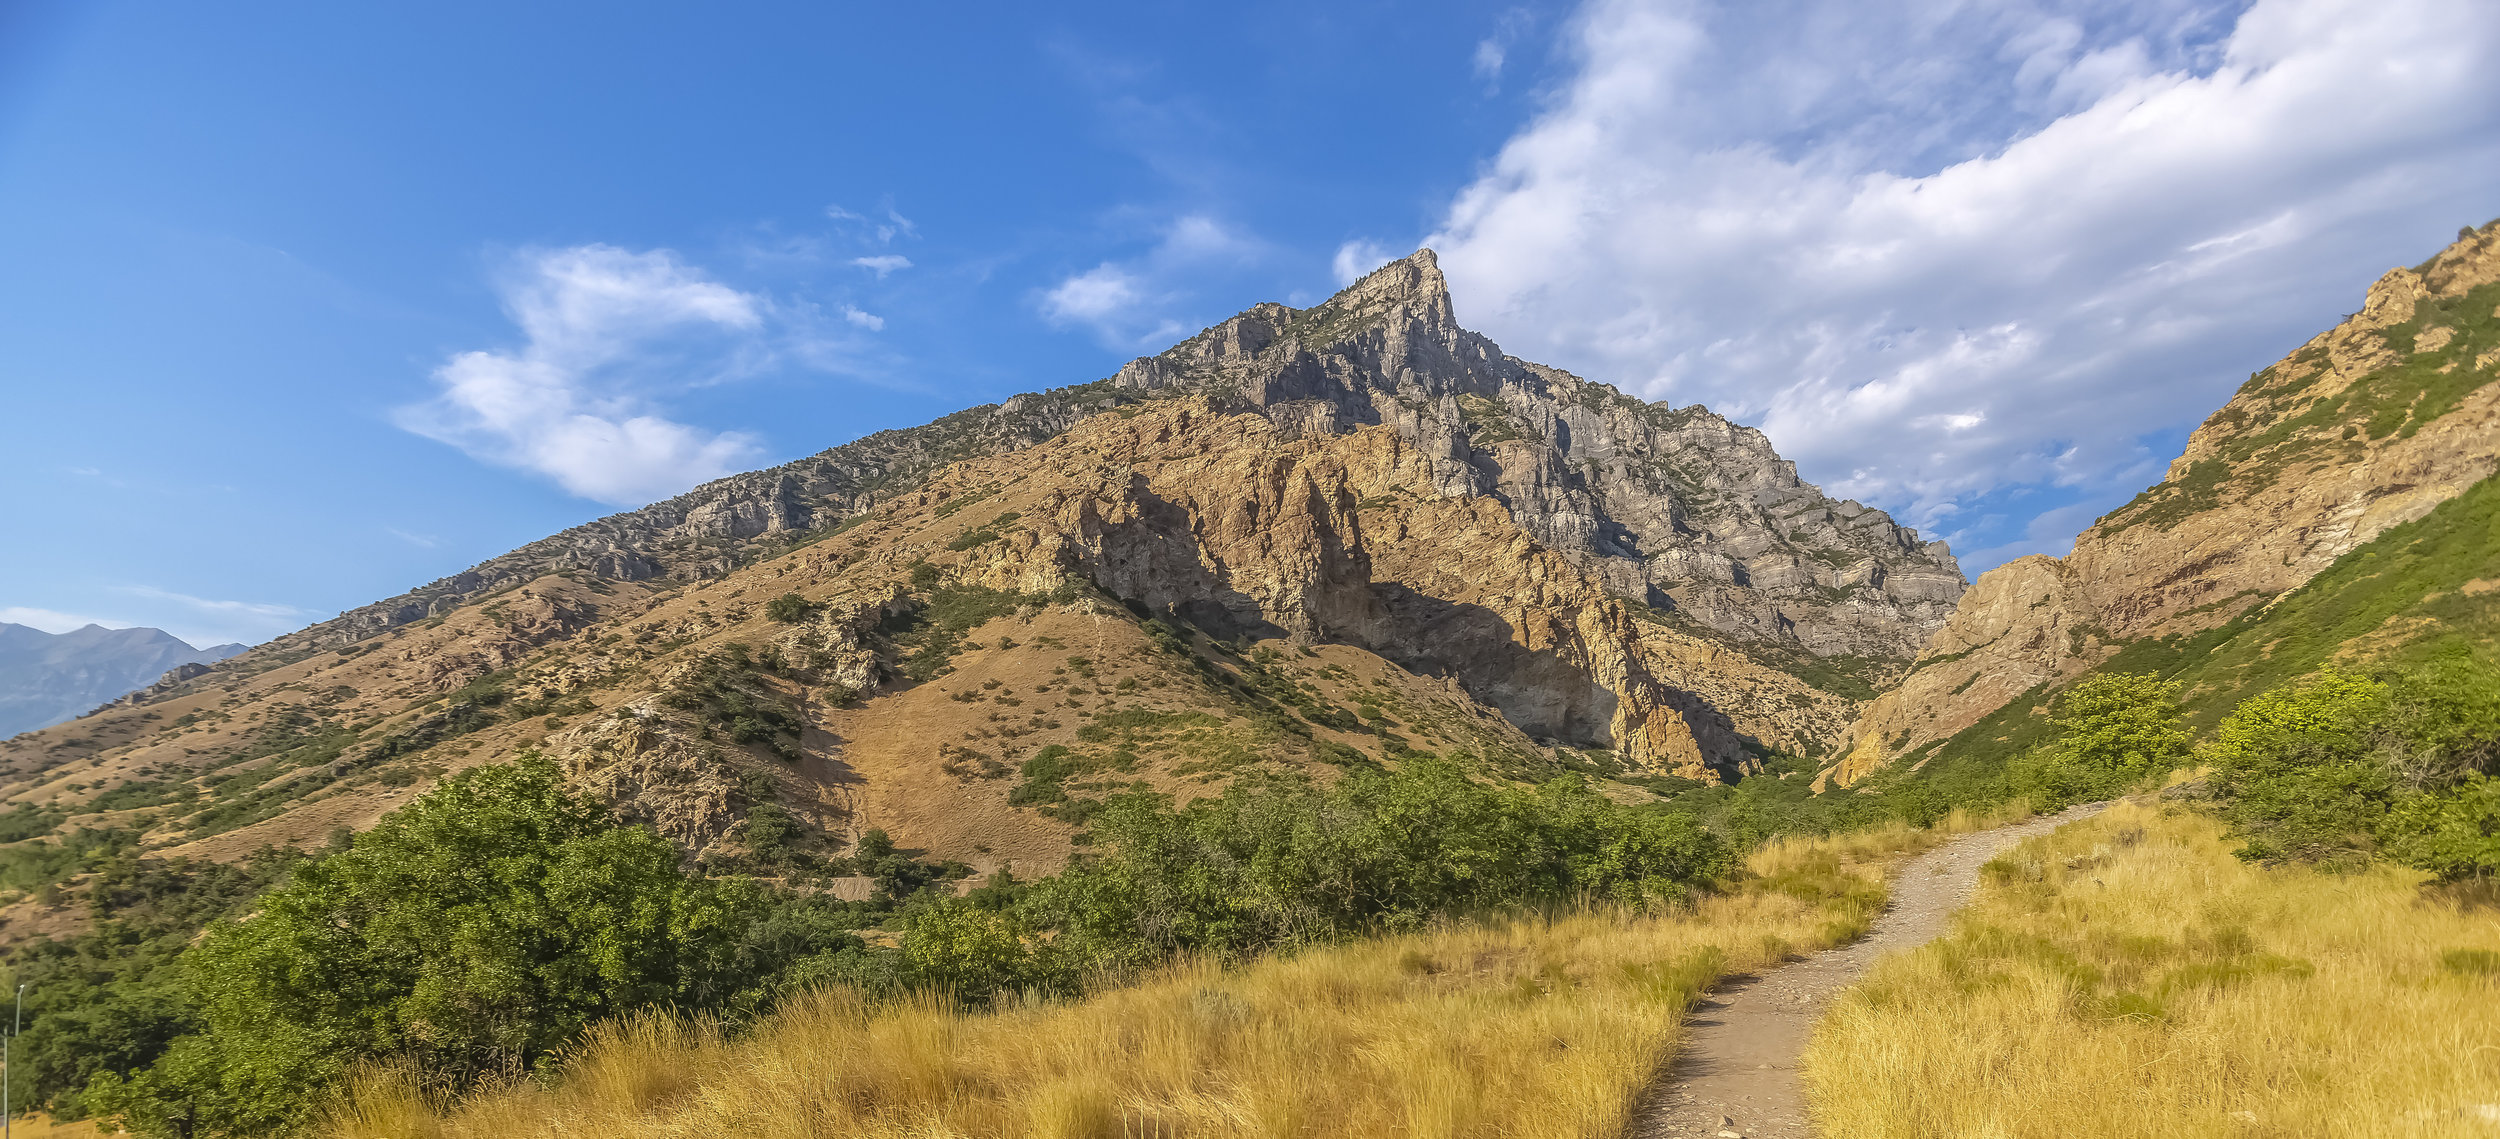 Crossing trails in Provo Canyon pano.JPG